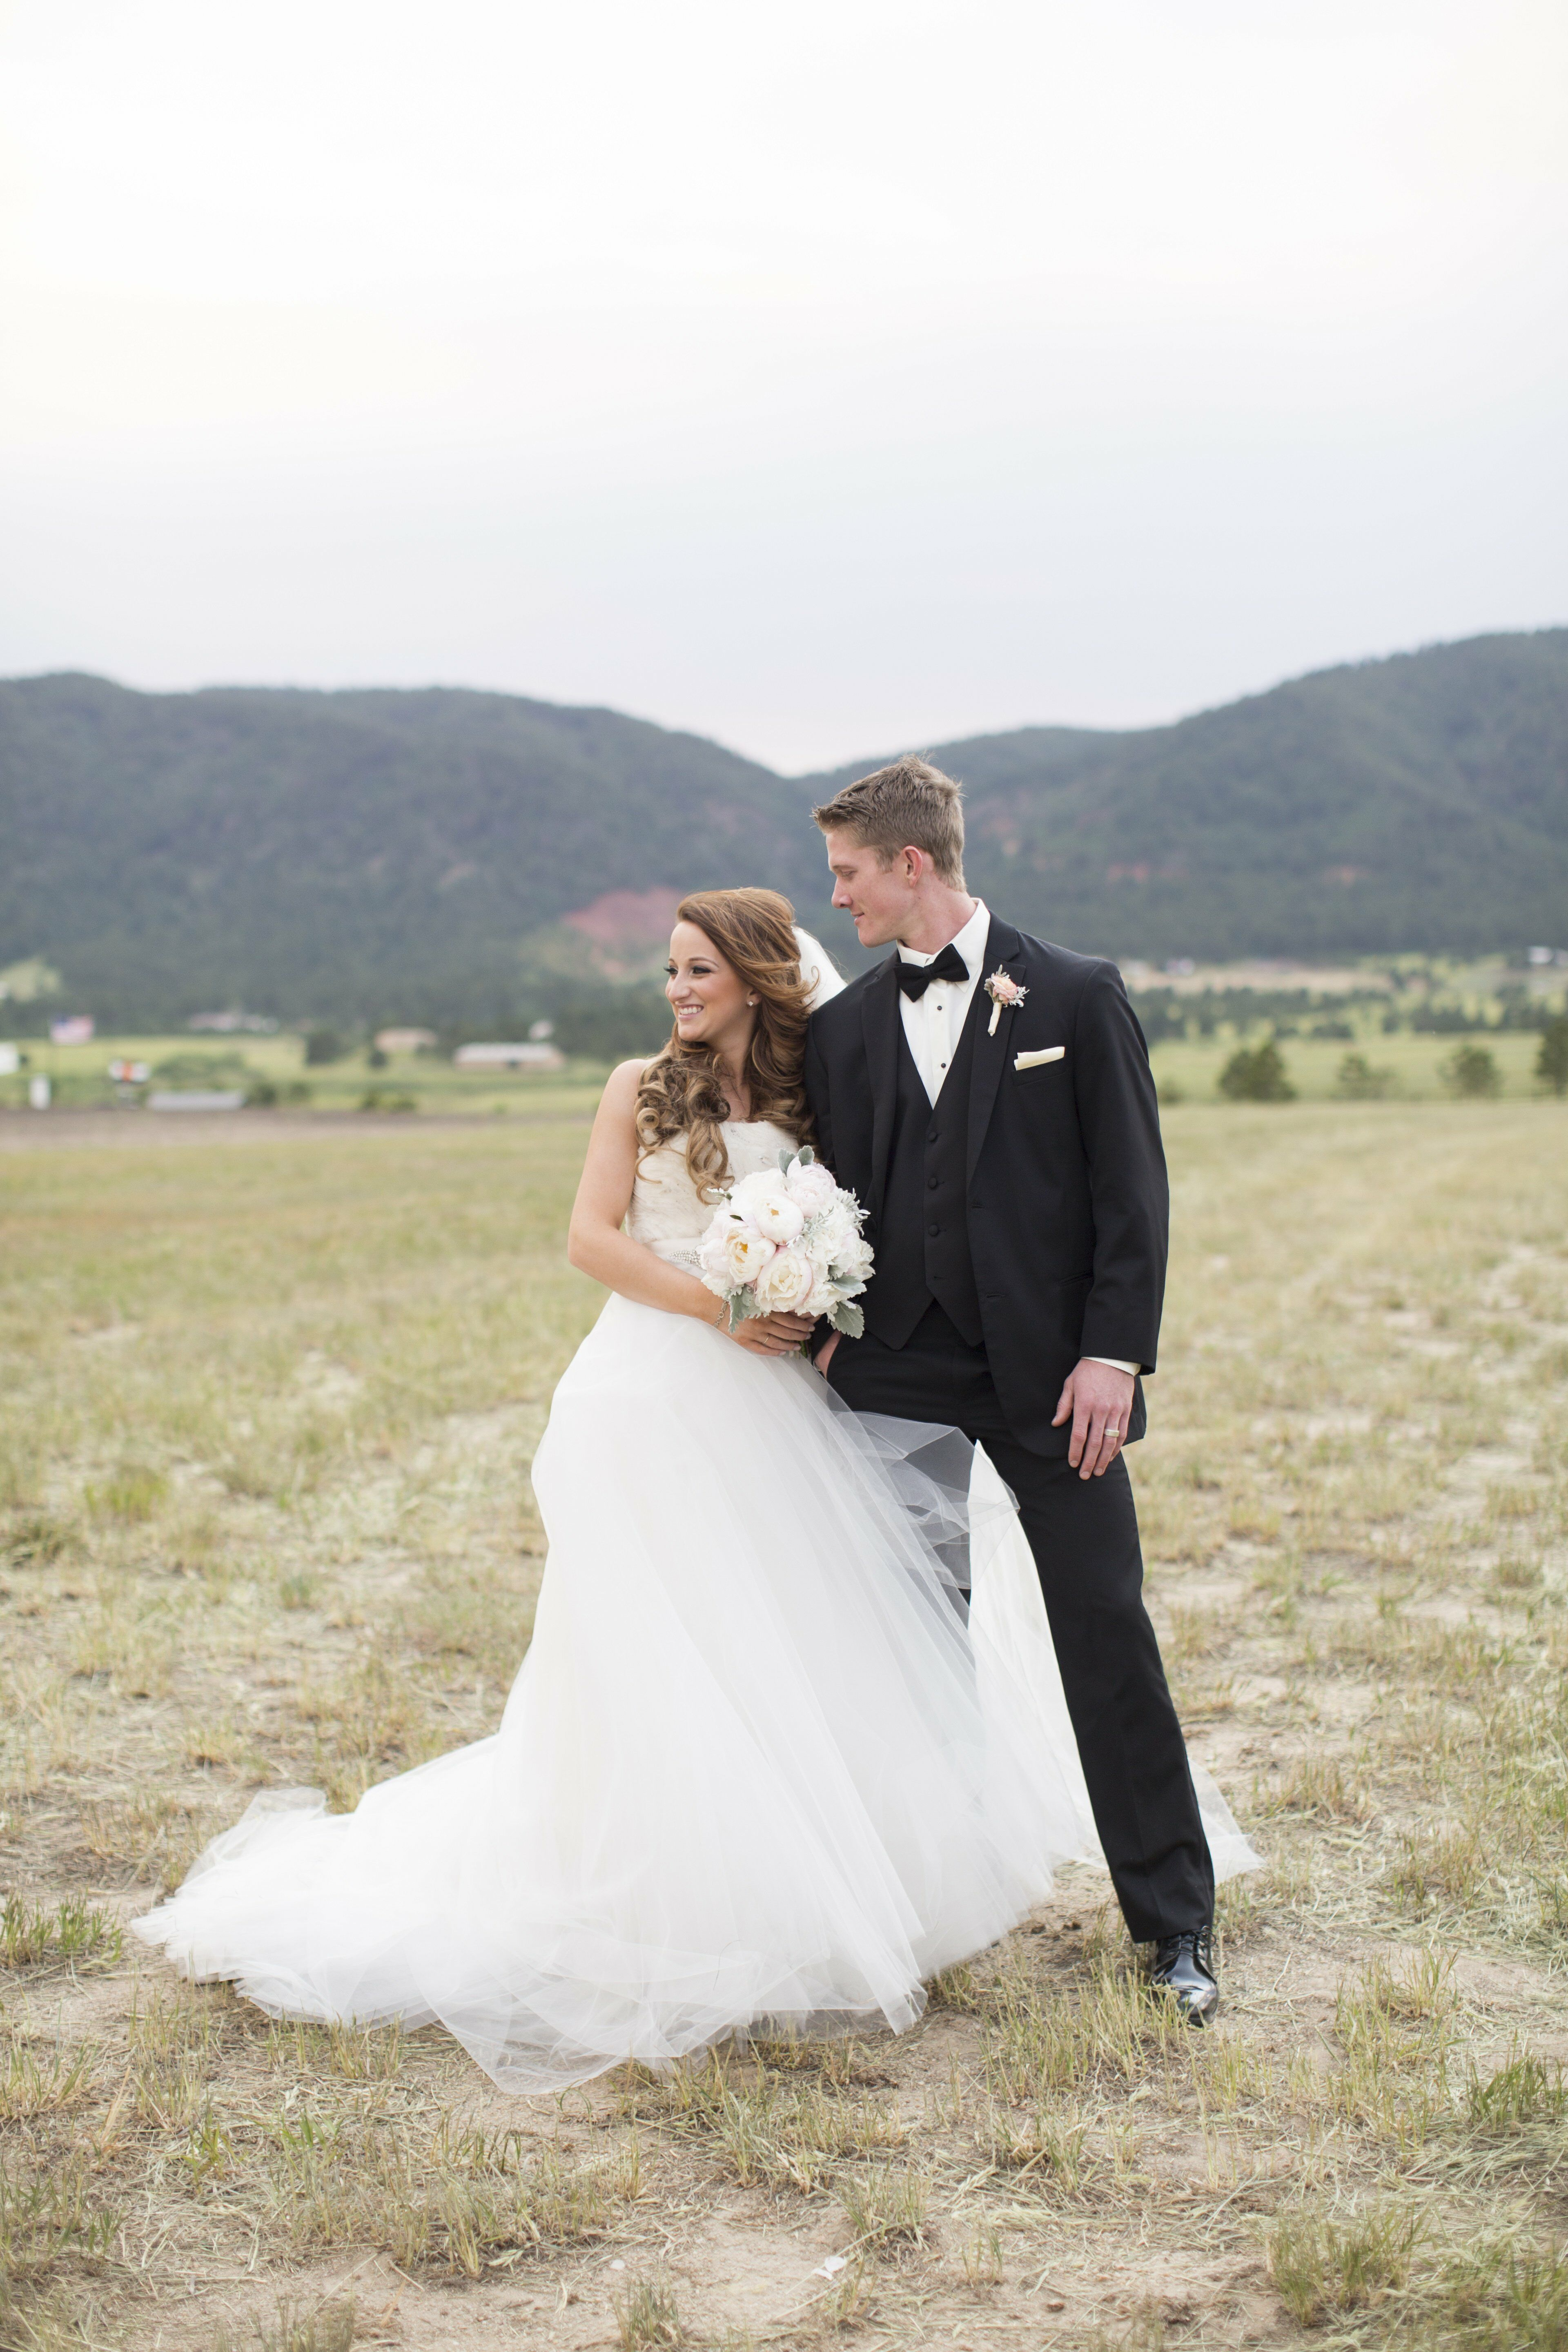 A Romantic Ranch Wedding at Spruce Mountain Guest Ranch in ...